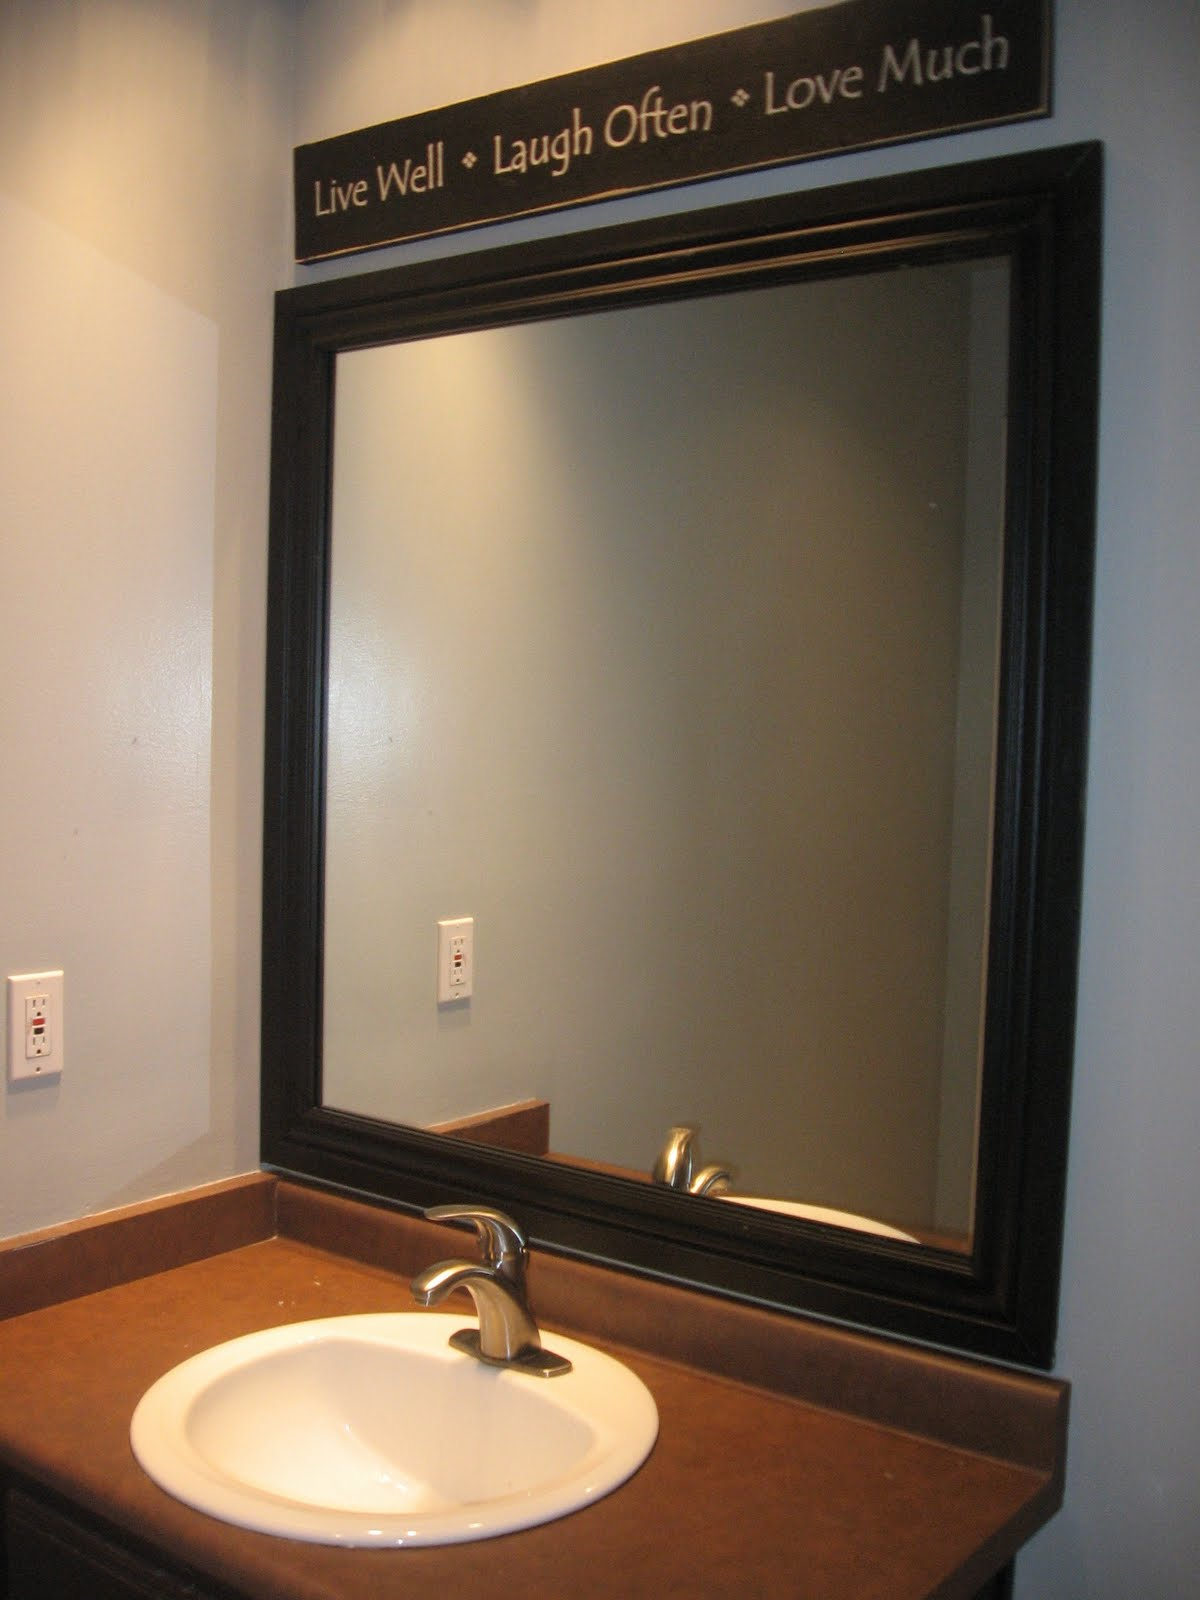 Creative bathroom mirror ideas - Washroom Mirrors Bathroom Mirrors Creative Bathroom Decoration